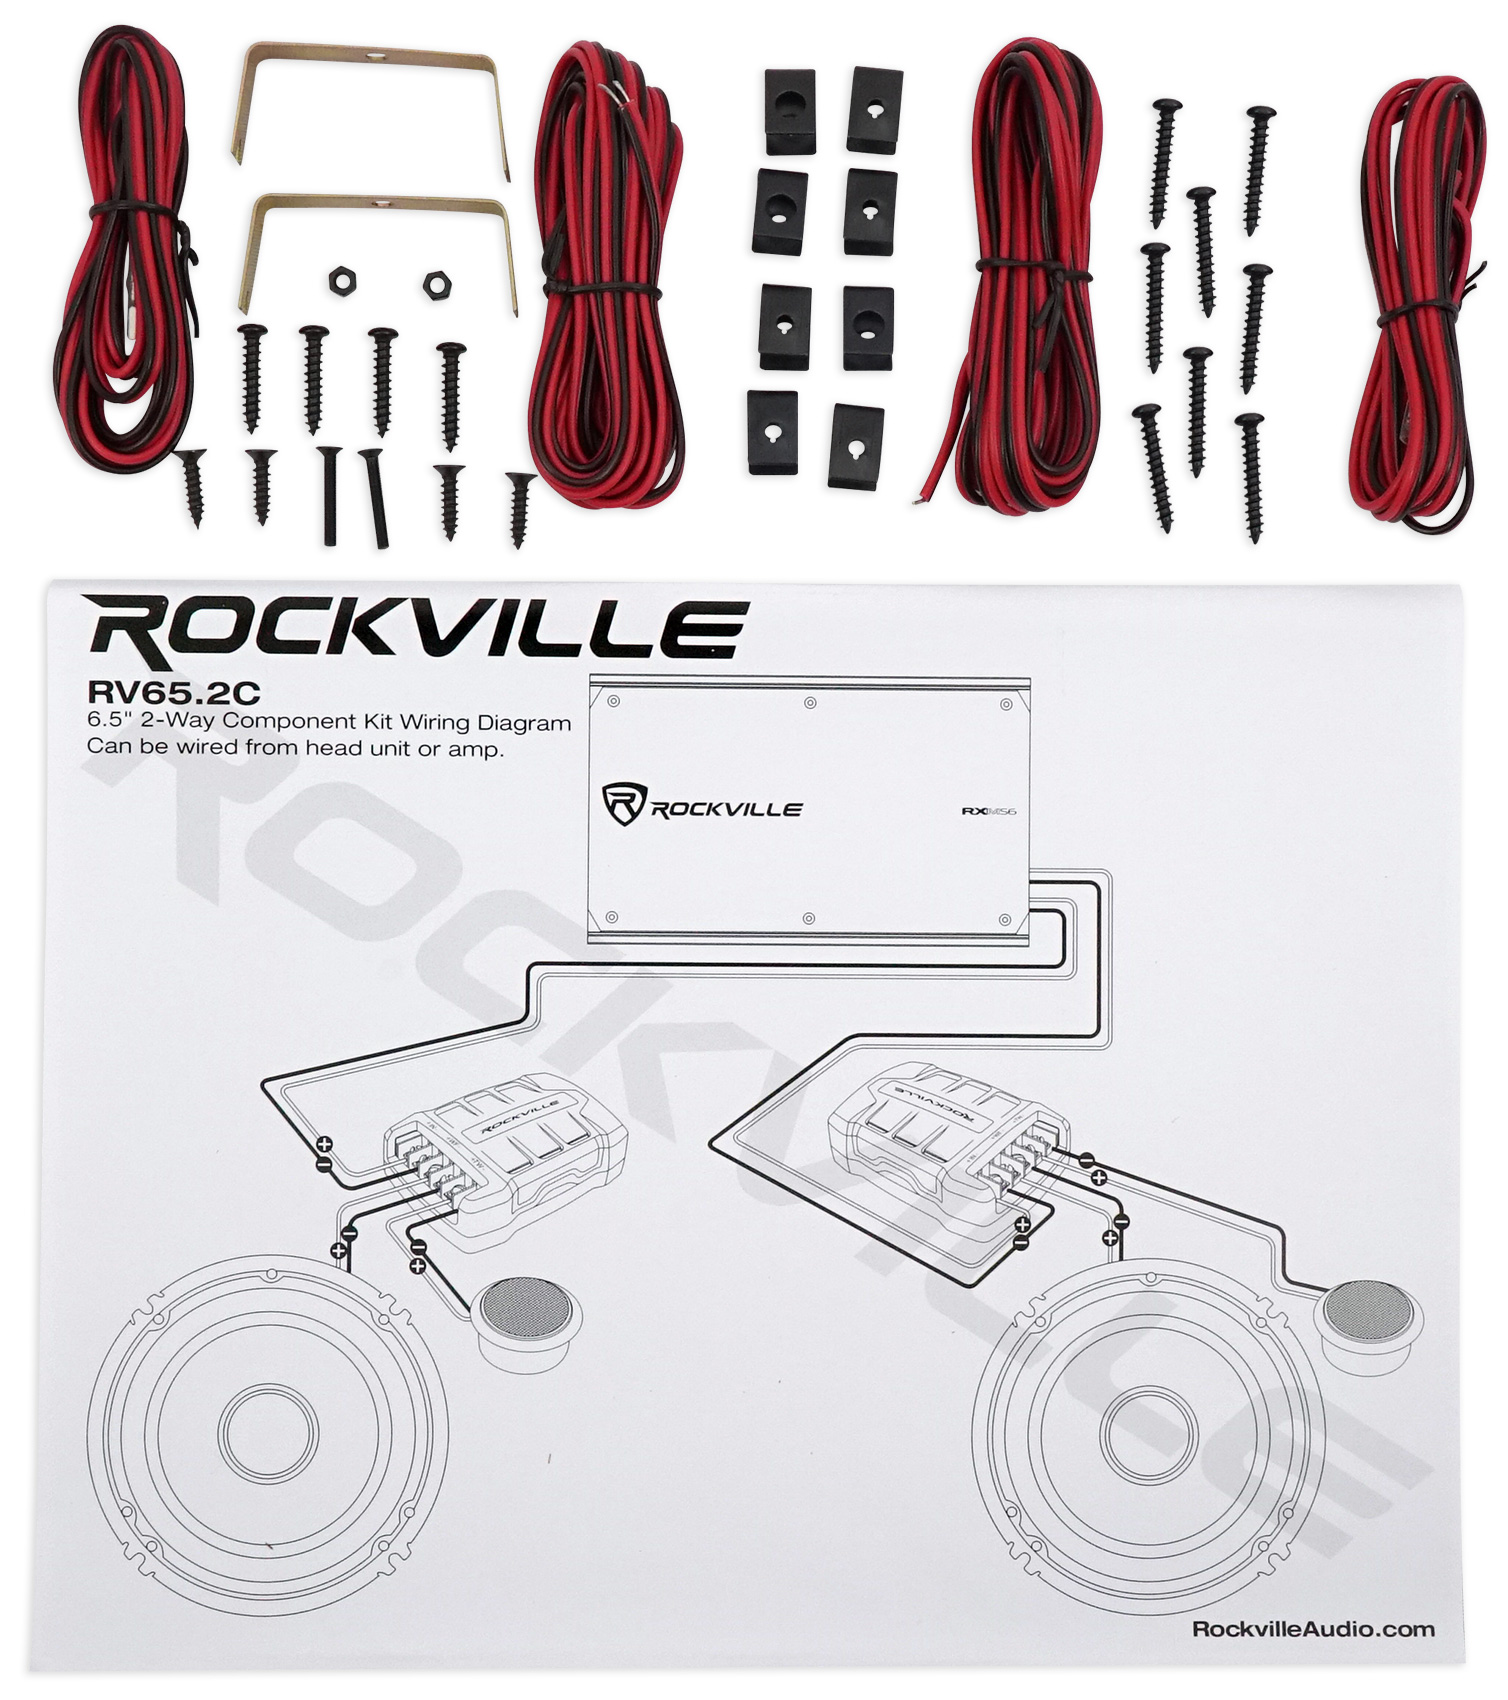 hight resolution of rockville rxh f5 amplifier car stereo amp wire kits cable component rockville wiring diagram rockville rxh